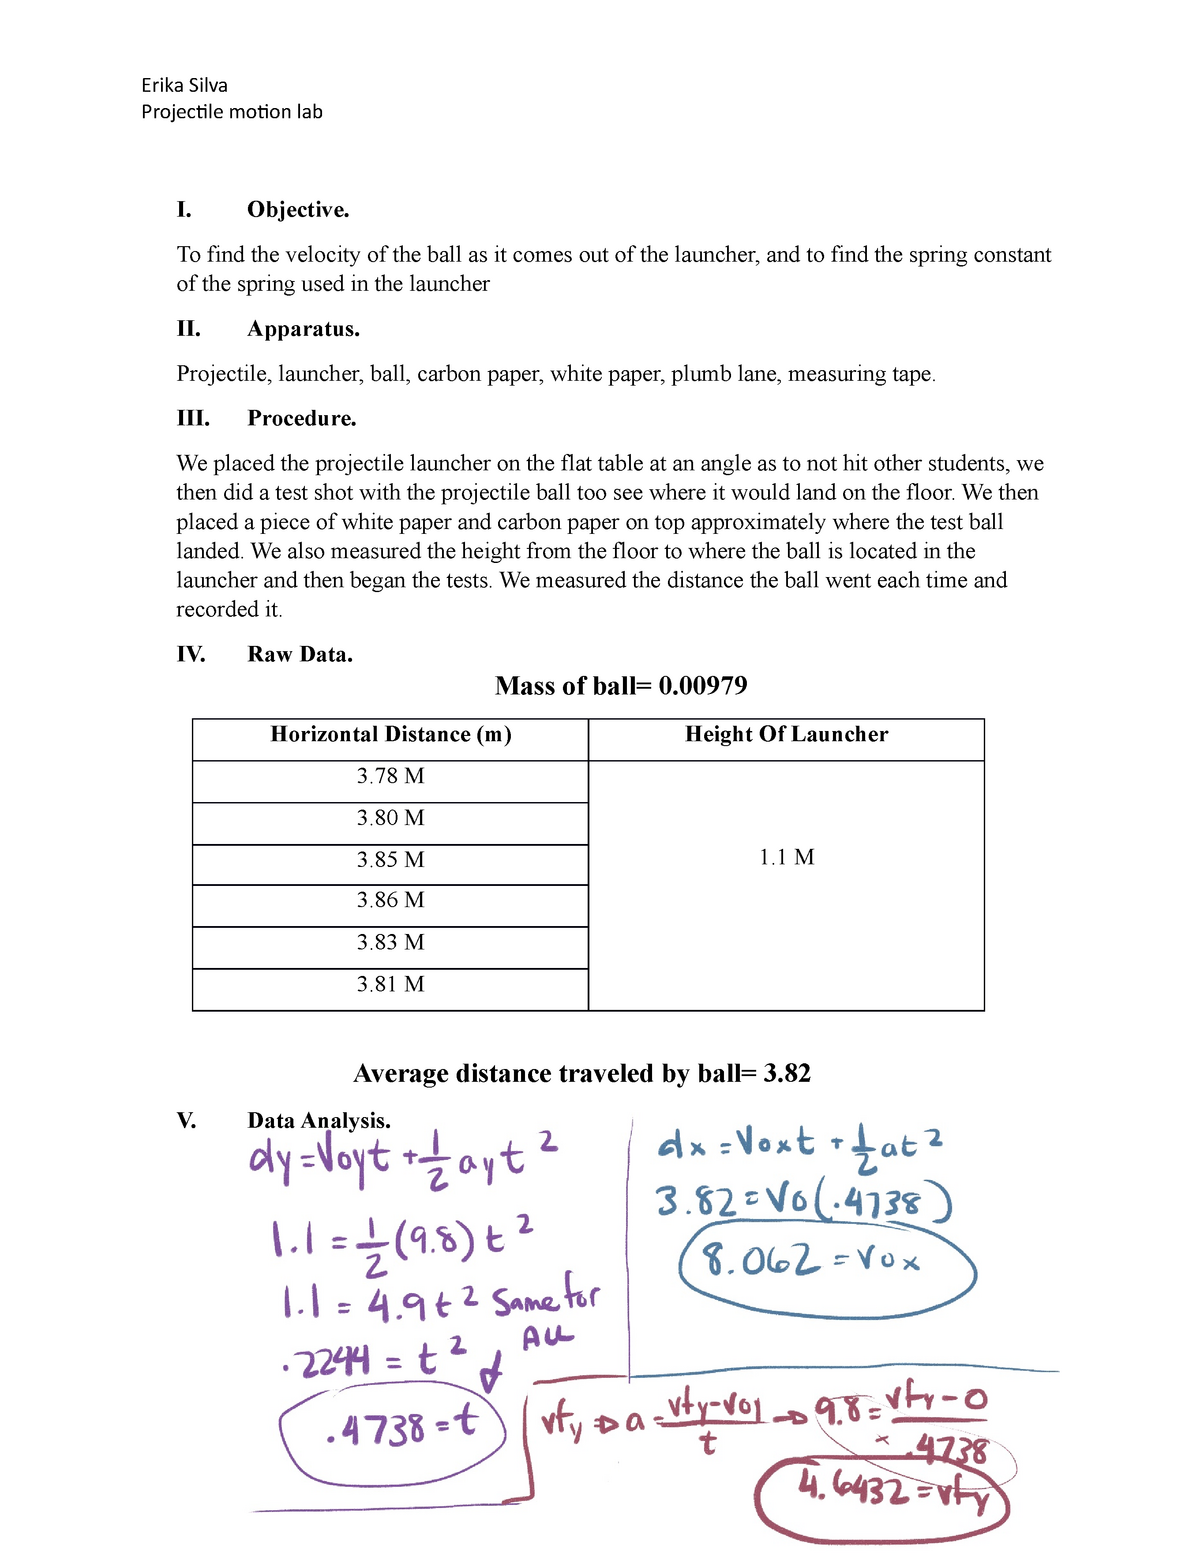 PHYlab 9 - lab assignment for PHY 101 - PHY 102: Introduction To